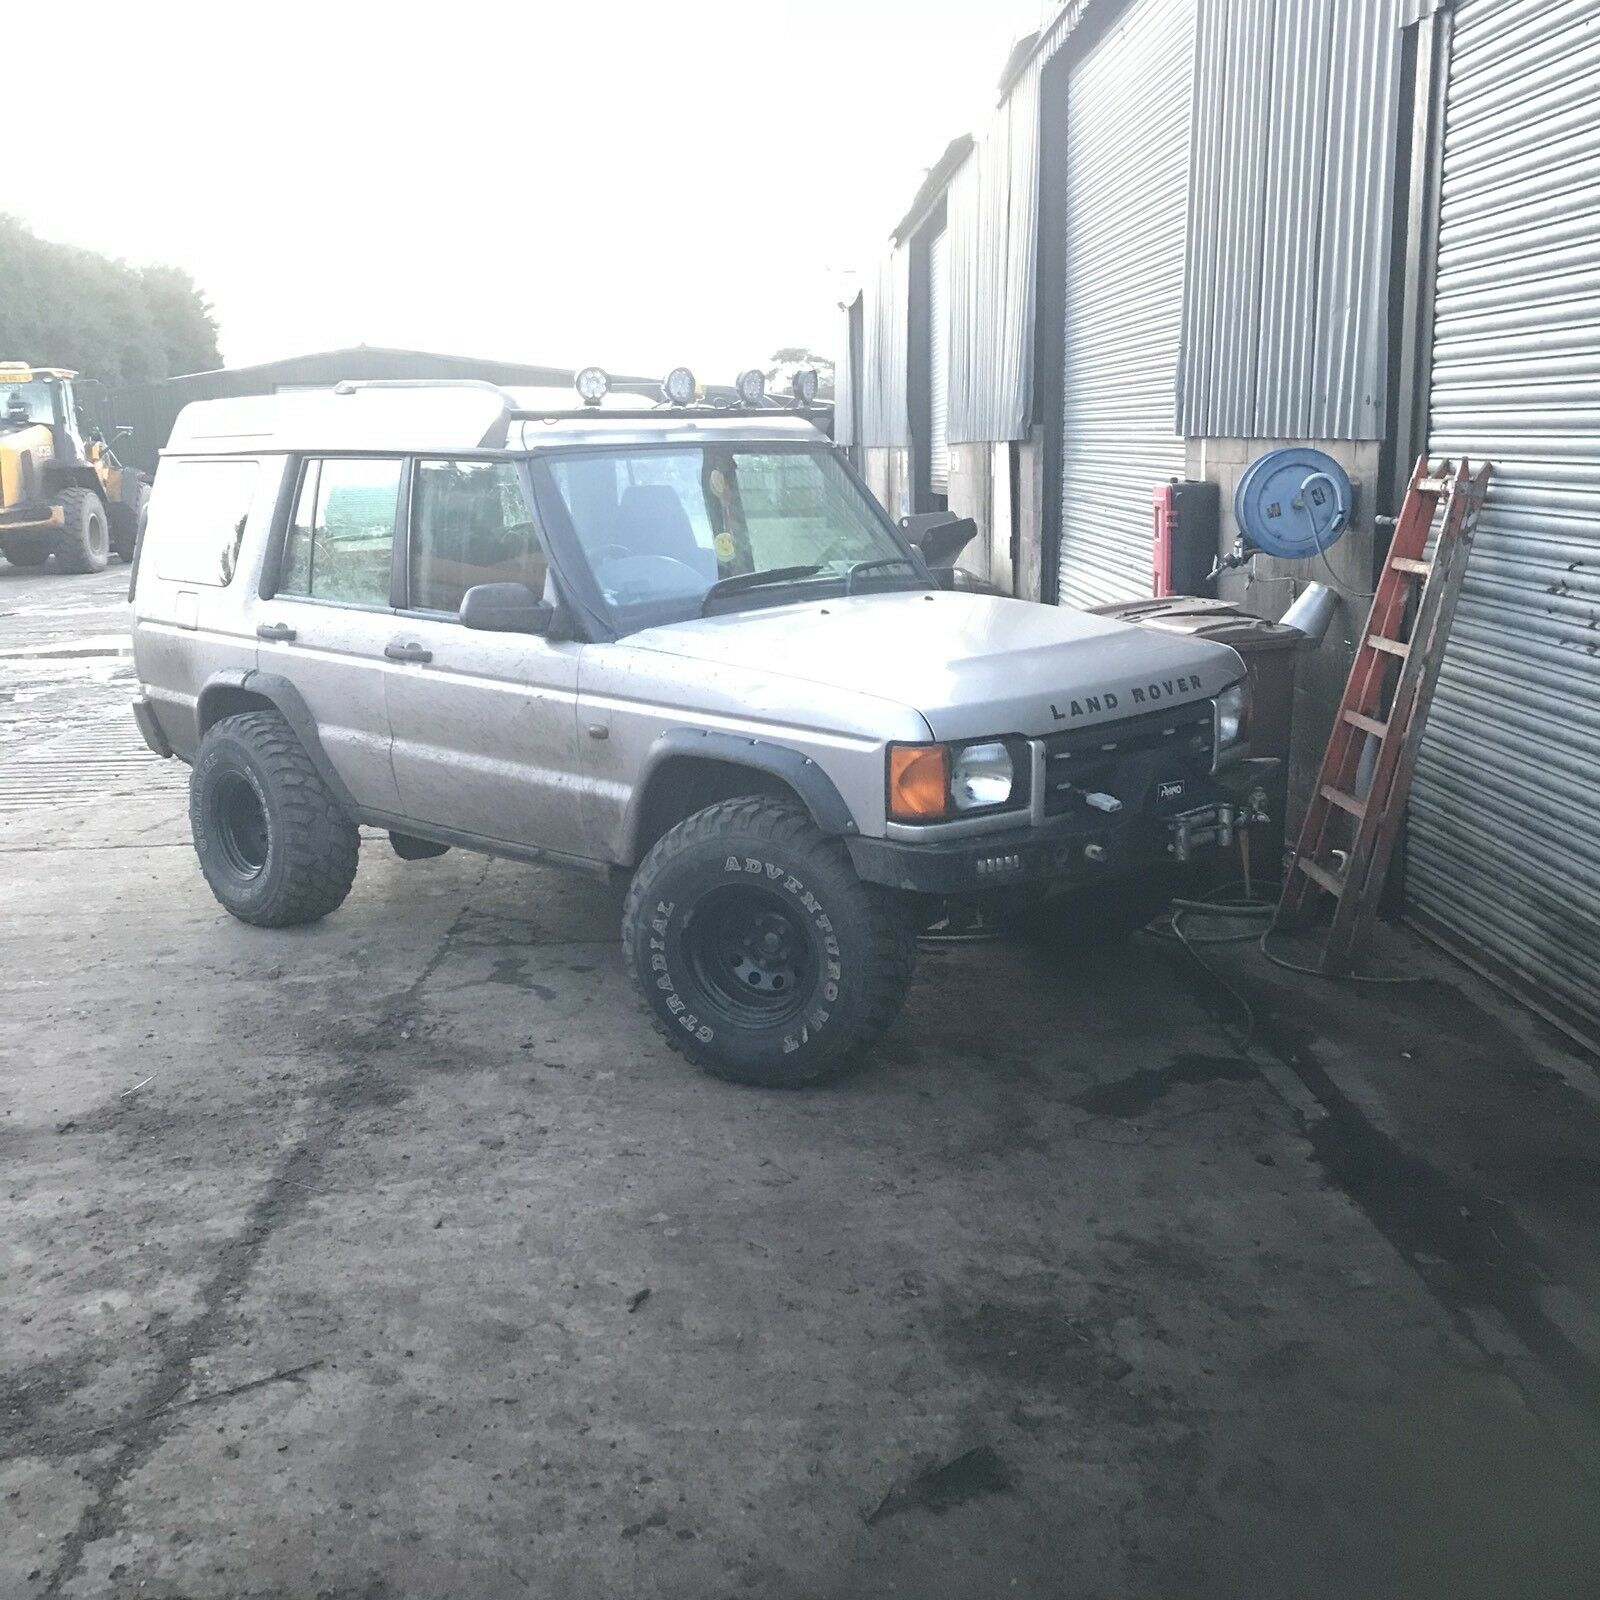 landrover off defender rover scooped discovery with parts sport for fibreglass road bonnet grp grill land masai